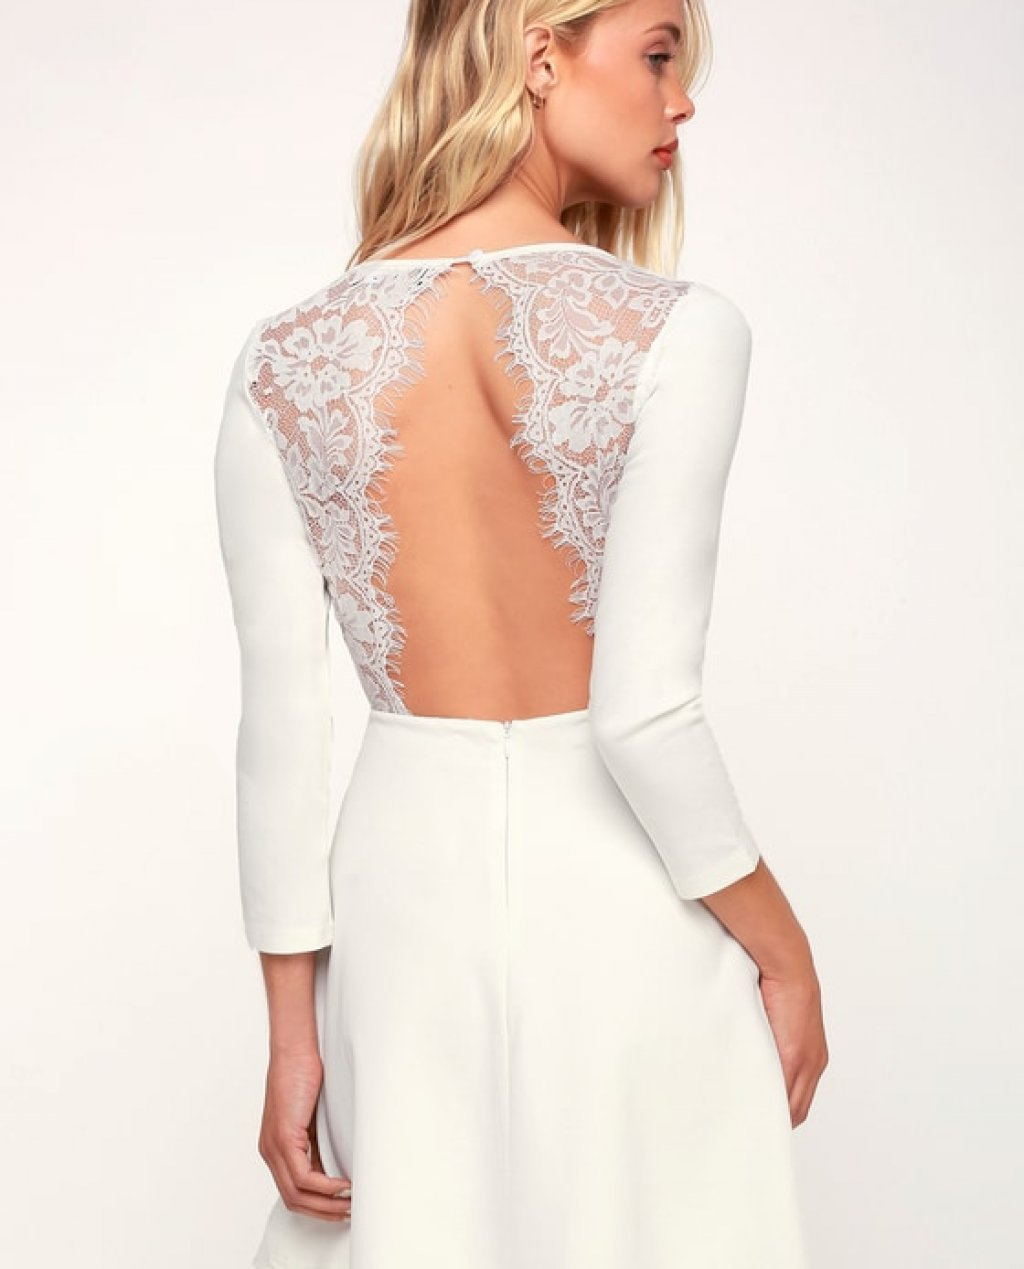 ee96dbf9c9 Felicity White Backless Lace Skater Dress